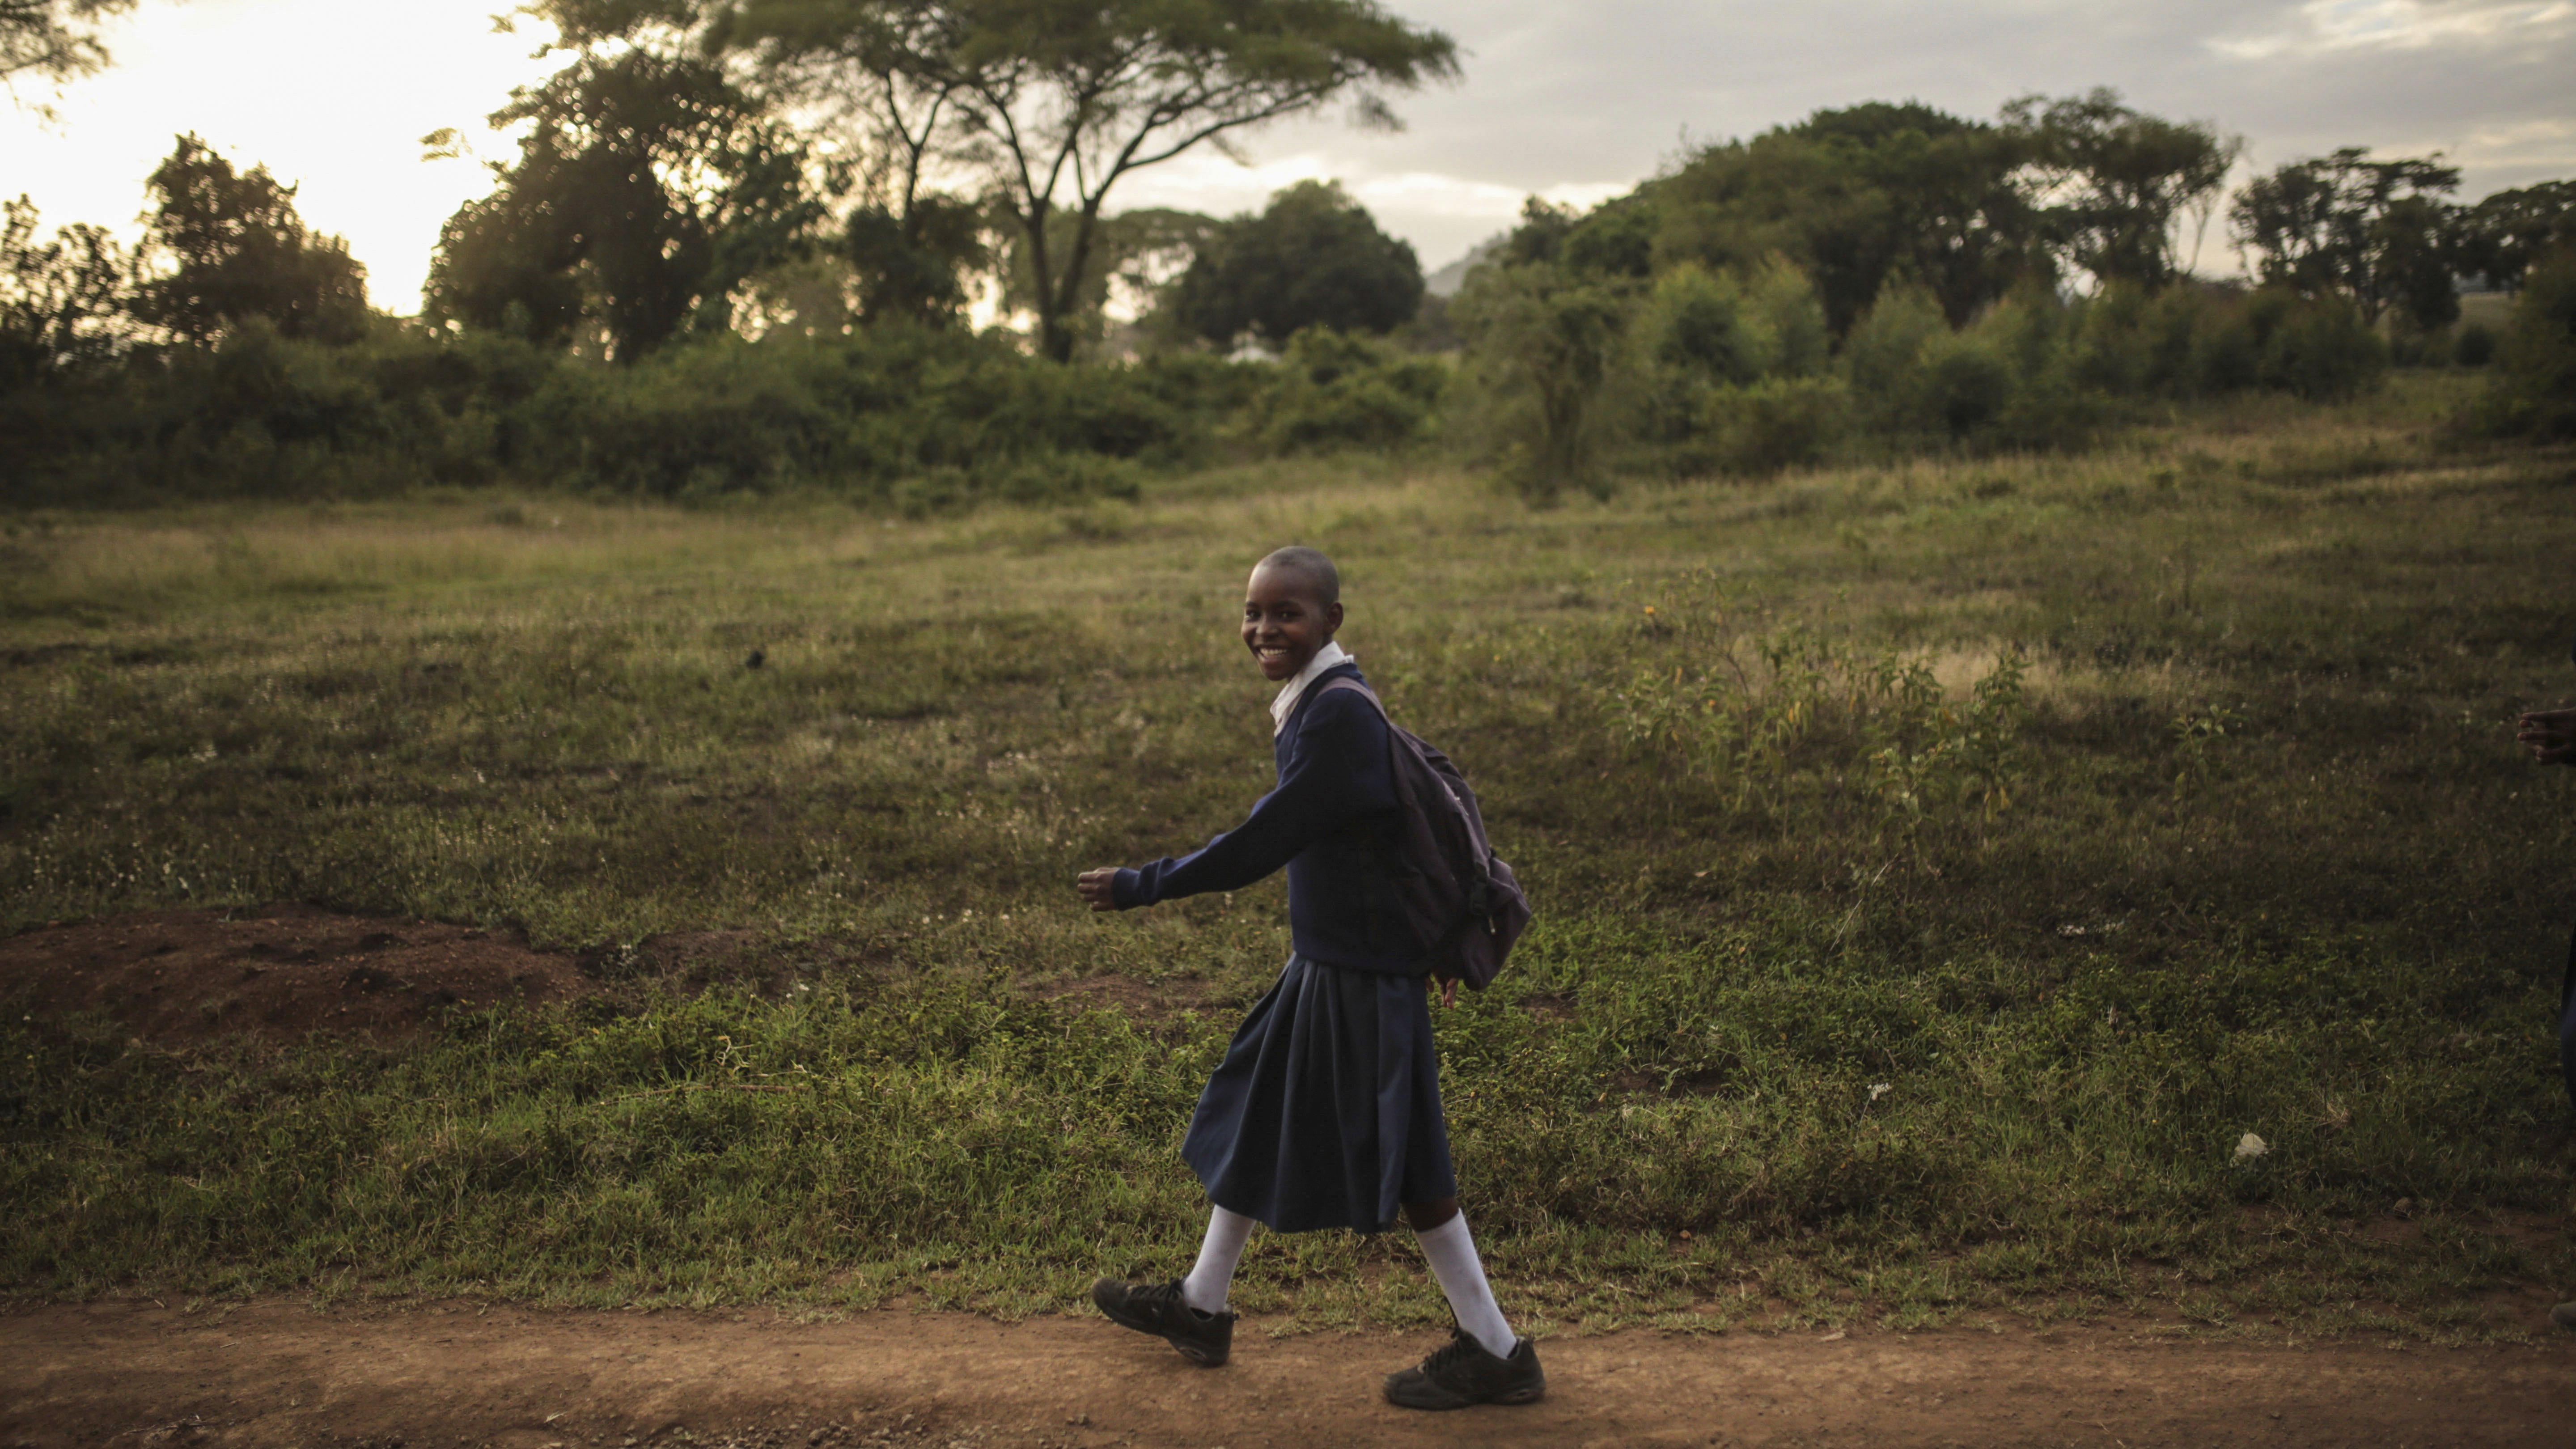 Tanzania's president John Magufuli does not want young mothers to go back to school